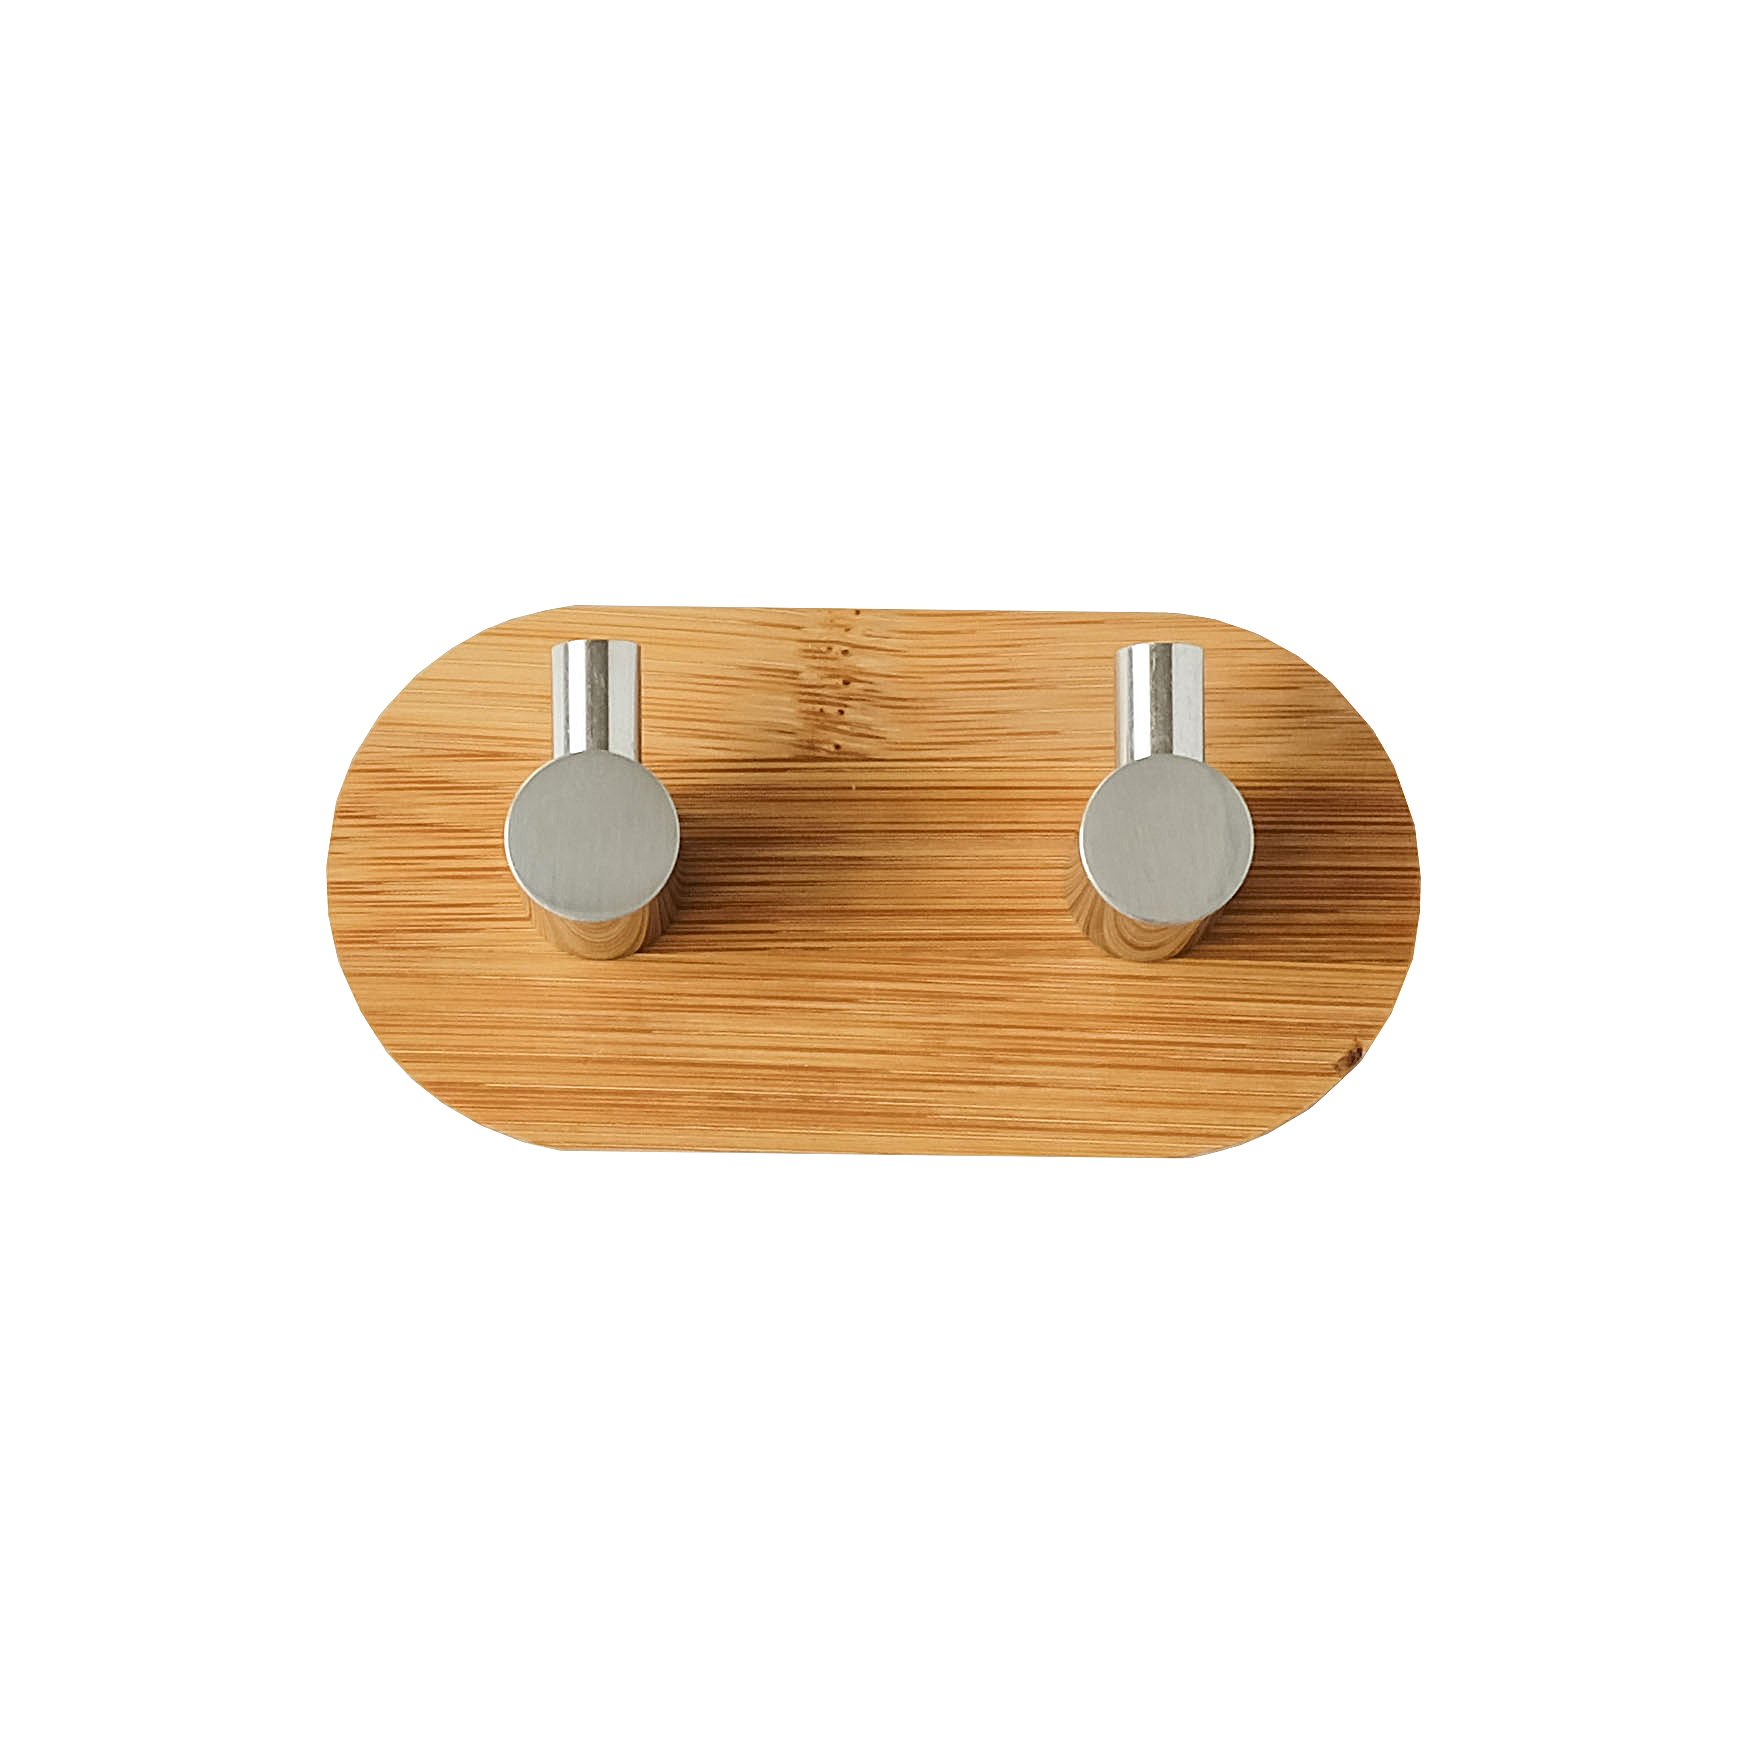 Adhesive Hooks, Bamboo Wood Stainless Steel Strong Stickiness Hook with Single Hook Double Hook Three Hook for Bathroom Kitchen